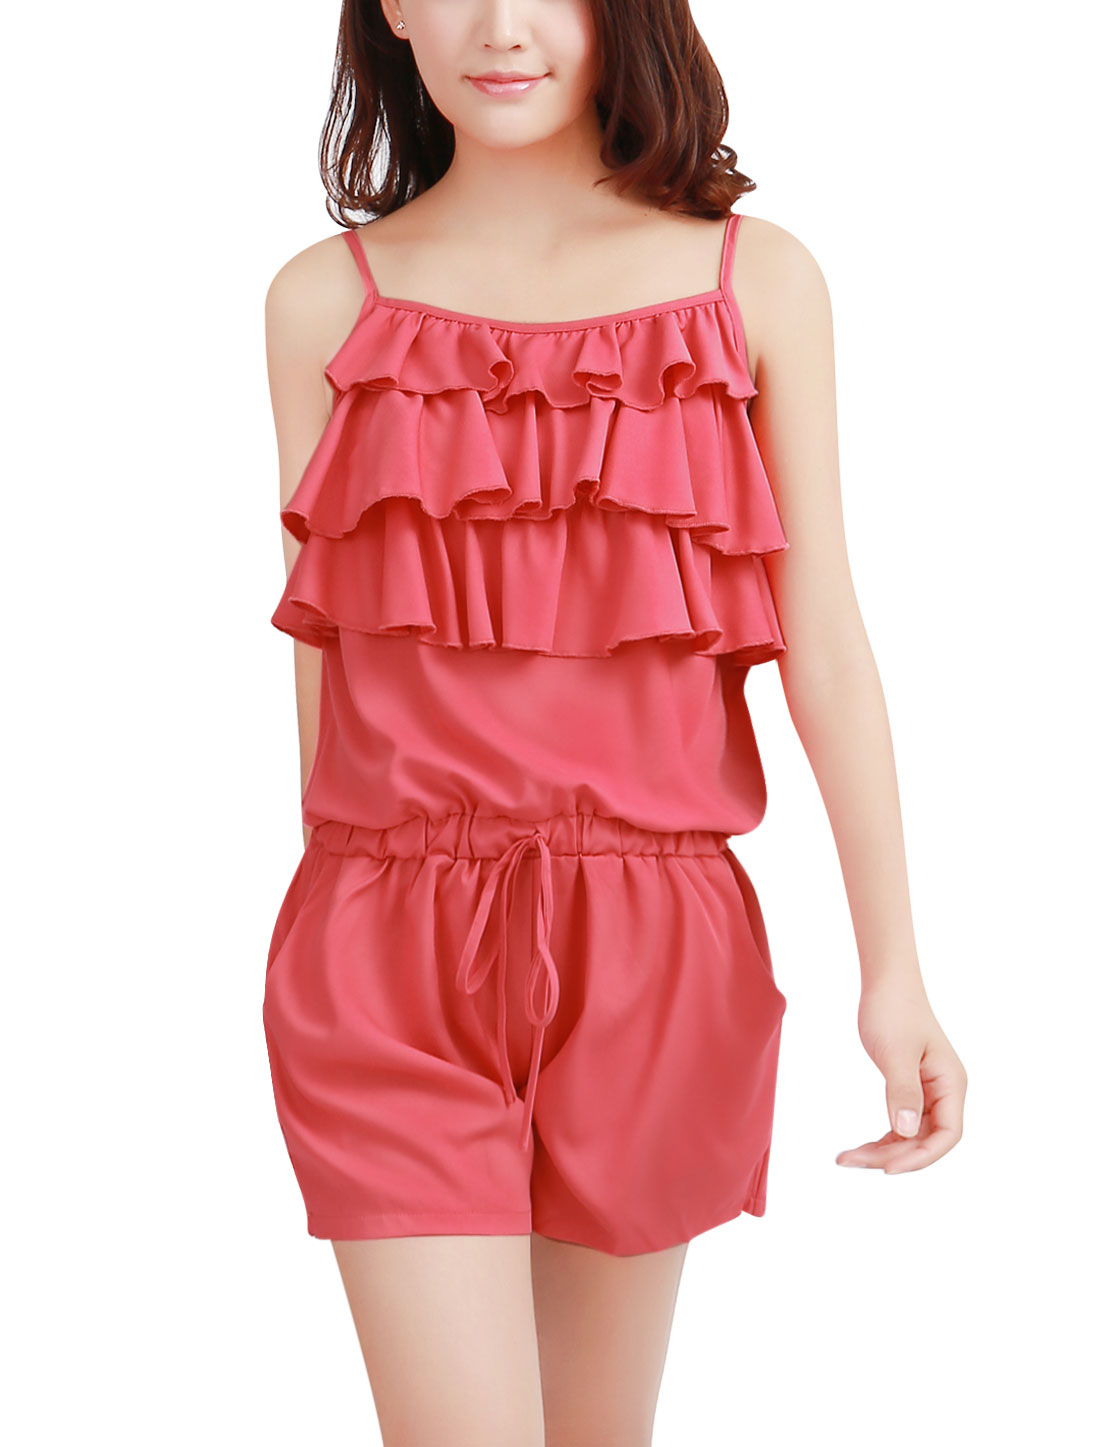 Chic Tiered Ruffles Front Pure Watermelon Red Rompers XL for Lady